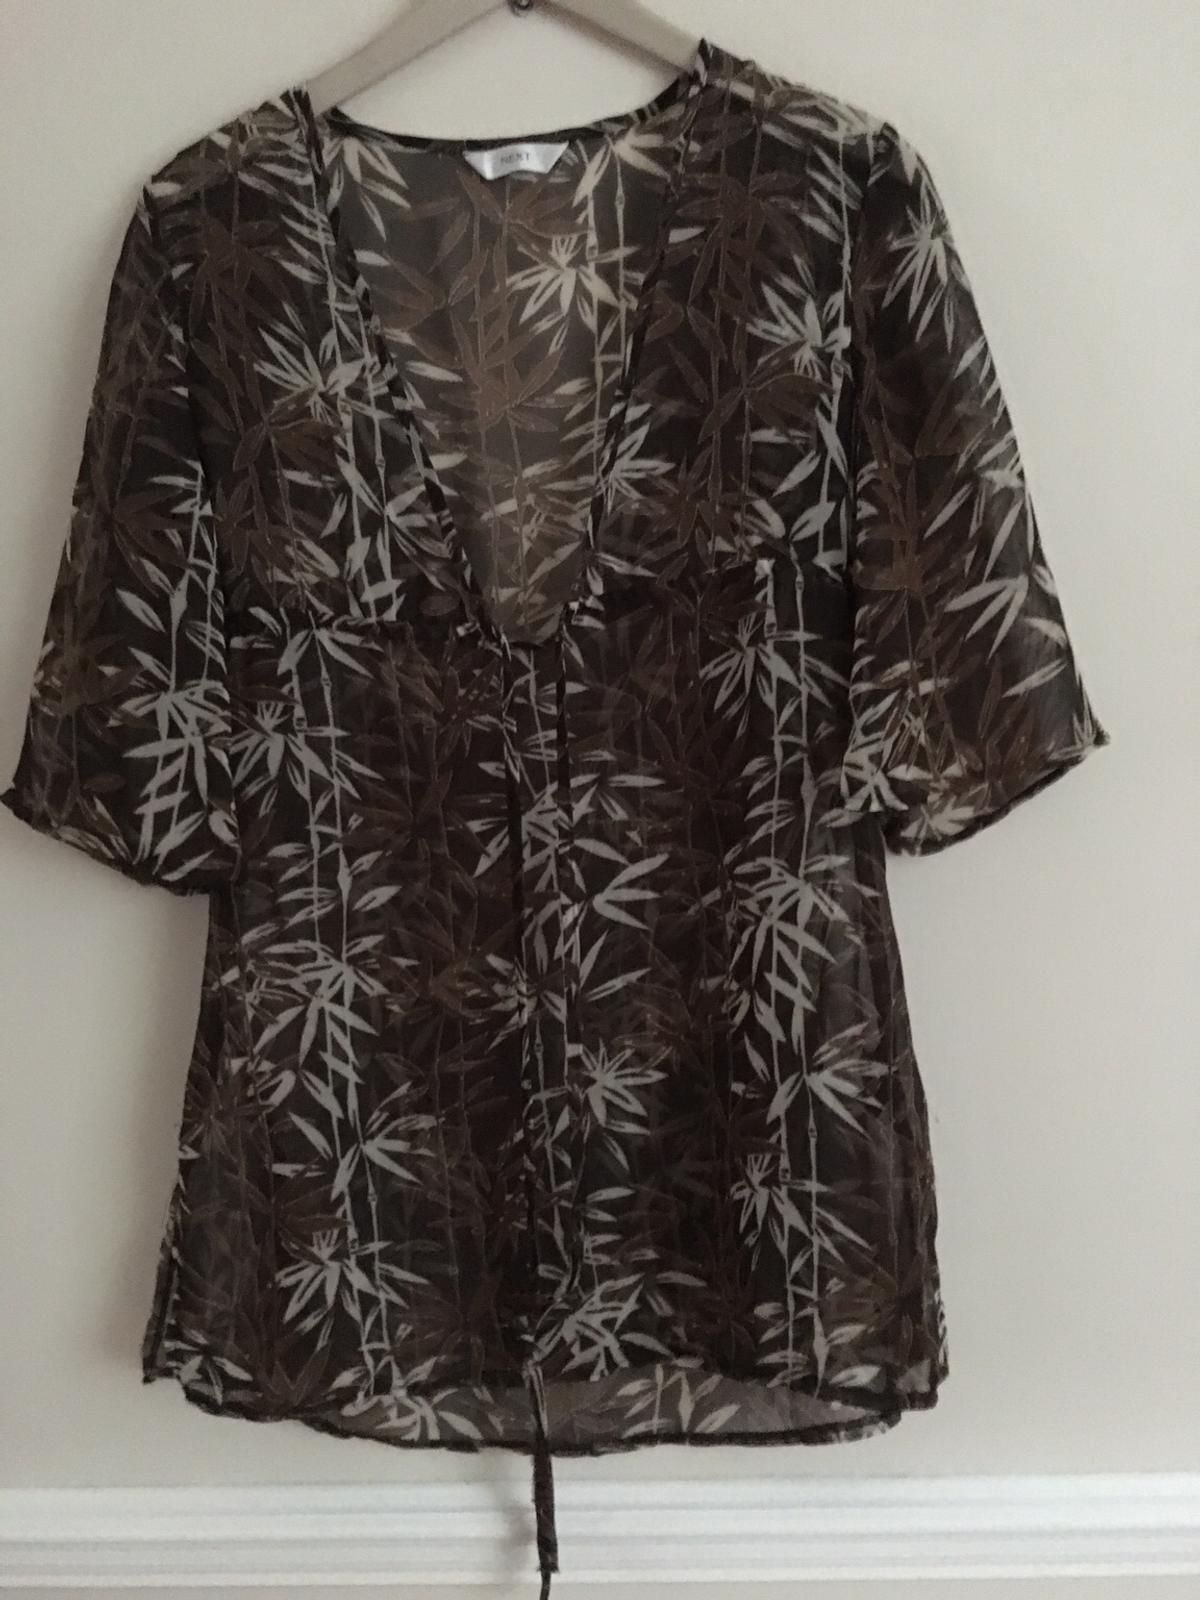 Sheer cover up. Worn a few times. From a smoke and pet free home. Postage extra.